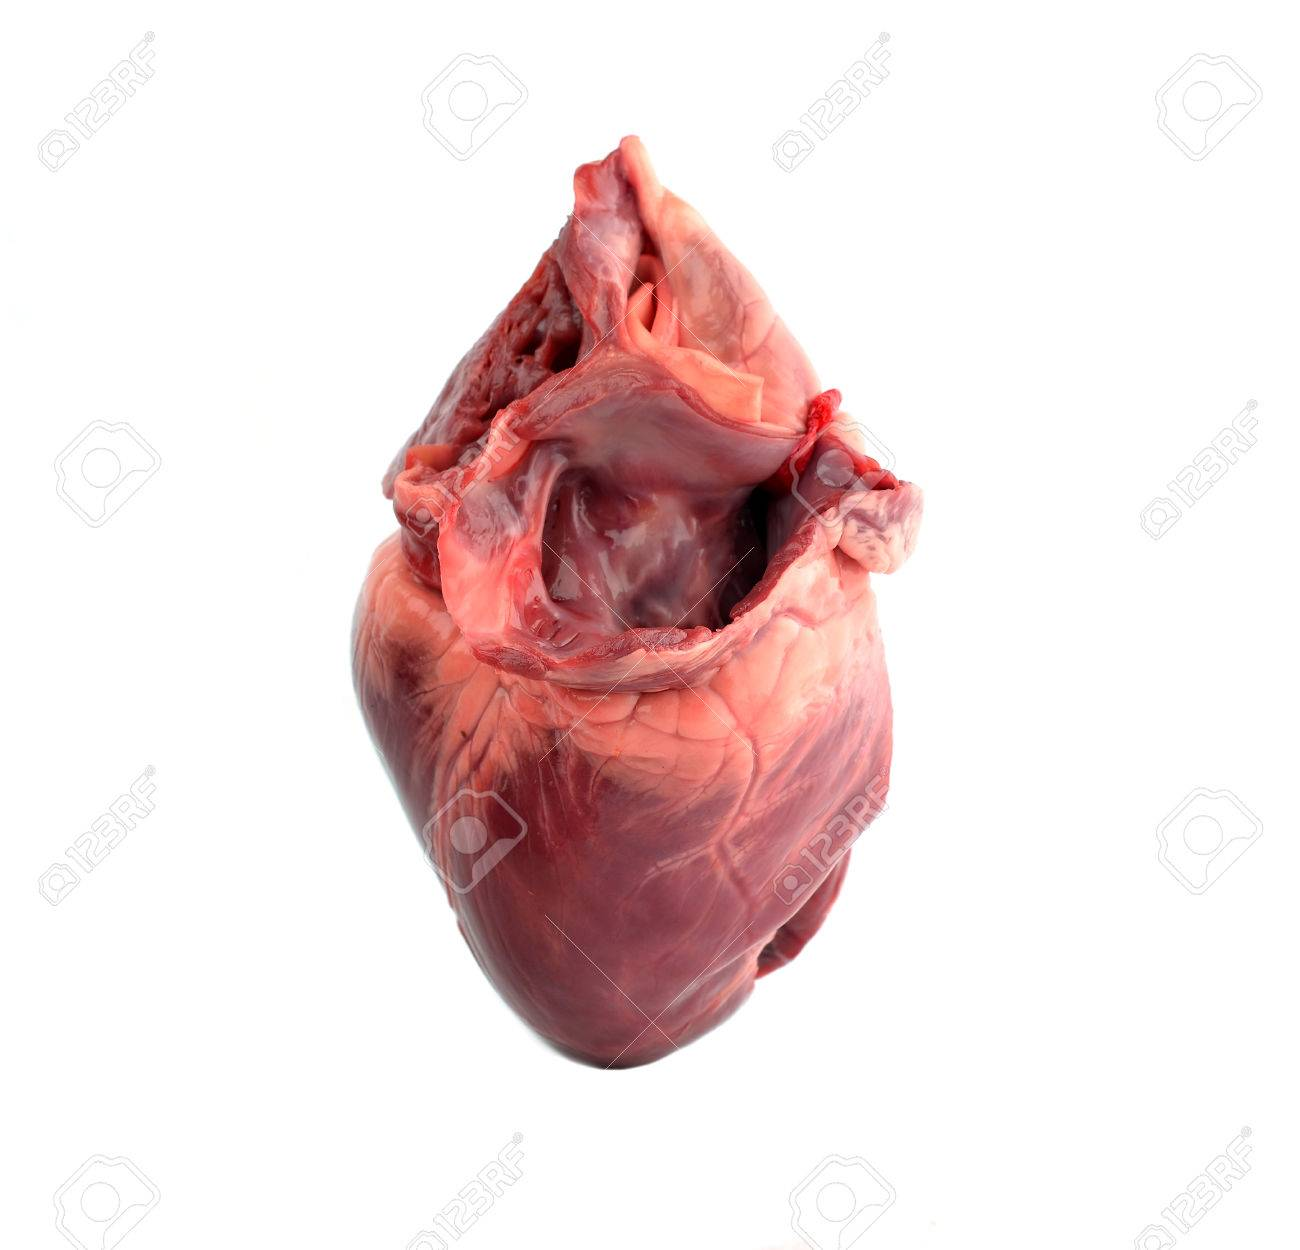 Pig Heart Stock Photo Picture And Royalty Free Image Image 26669461